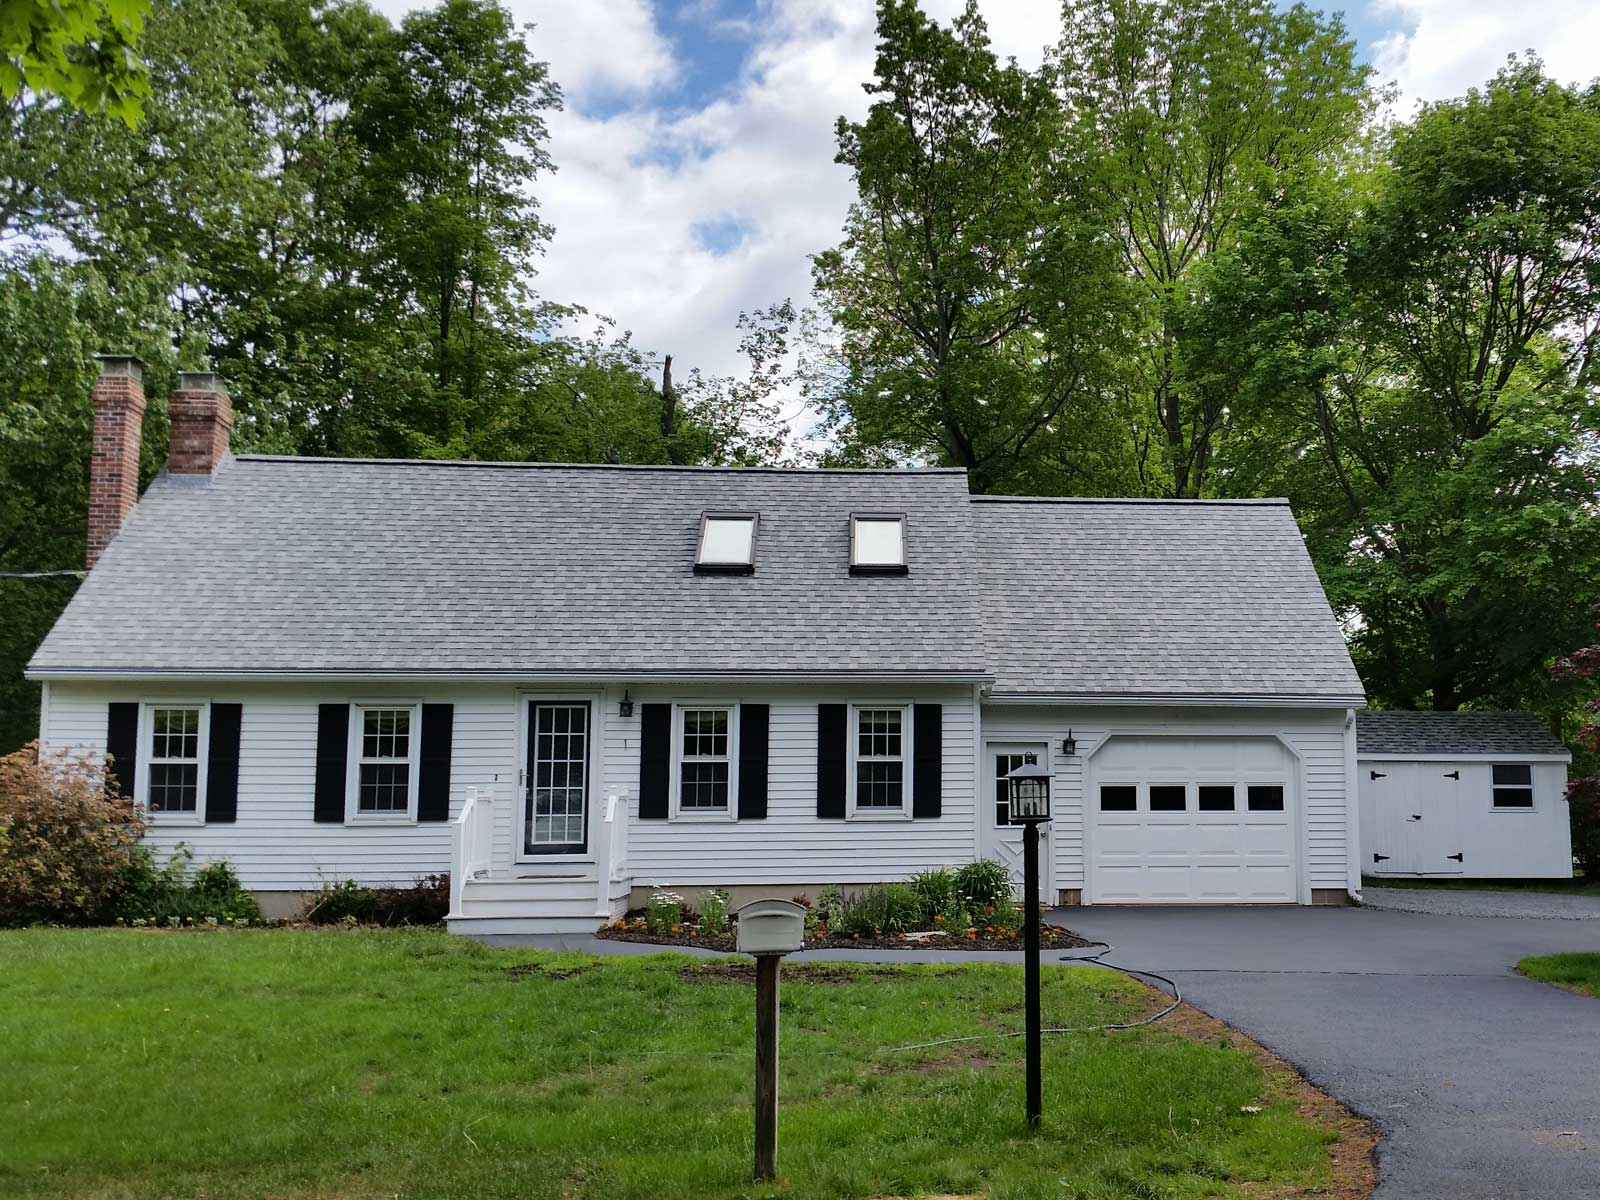 Single Family Home for Sale at York Village Cape 1 Camden Avenue York, Maine 03909 United States